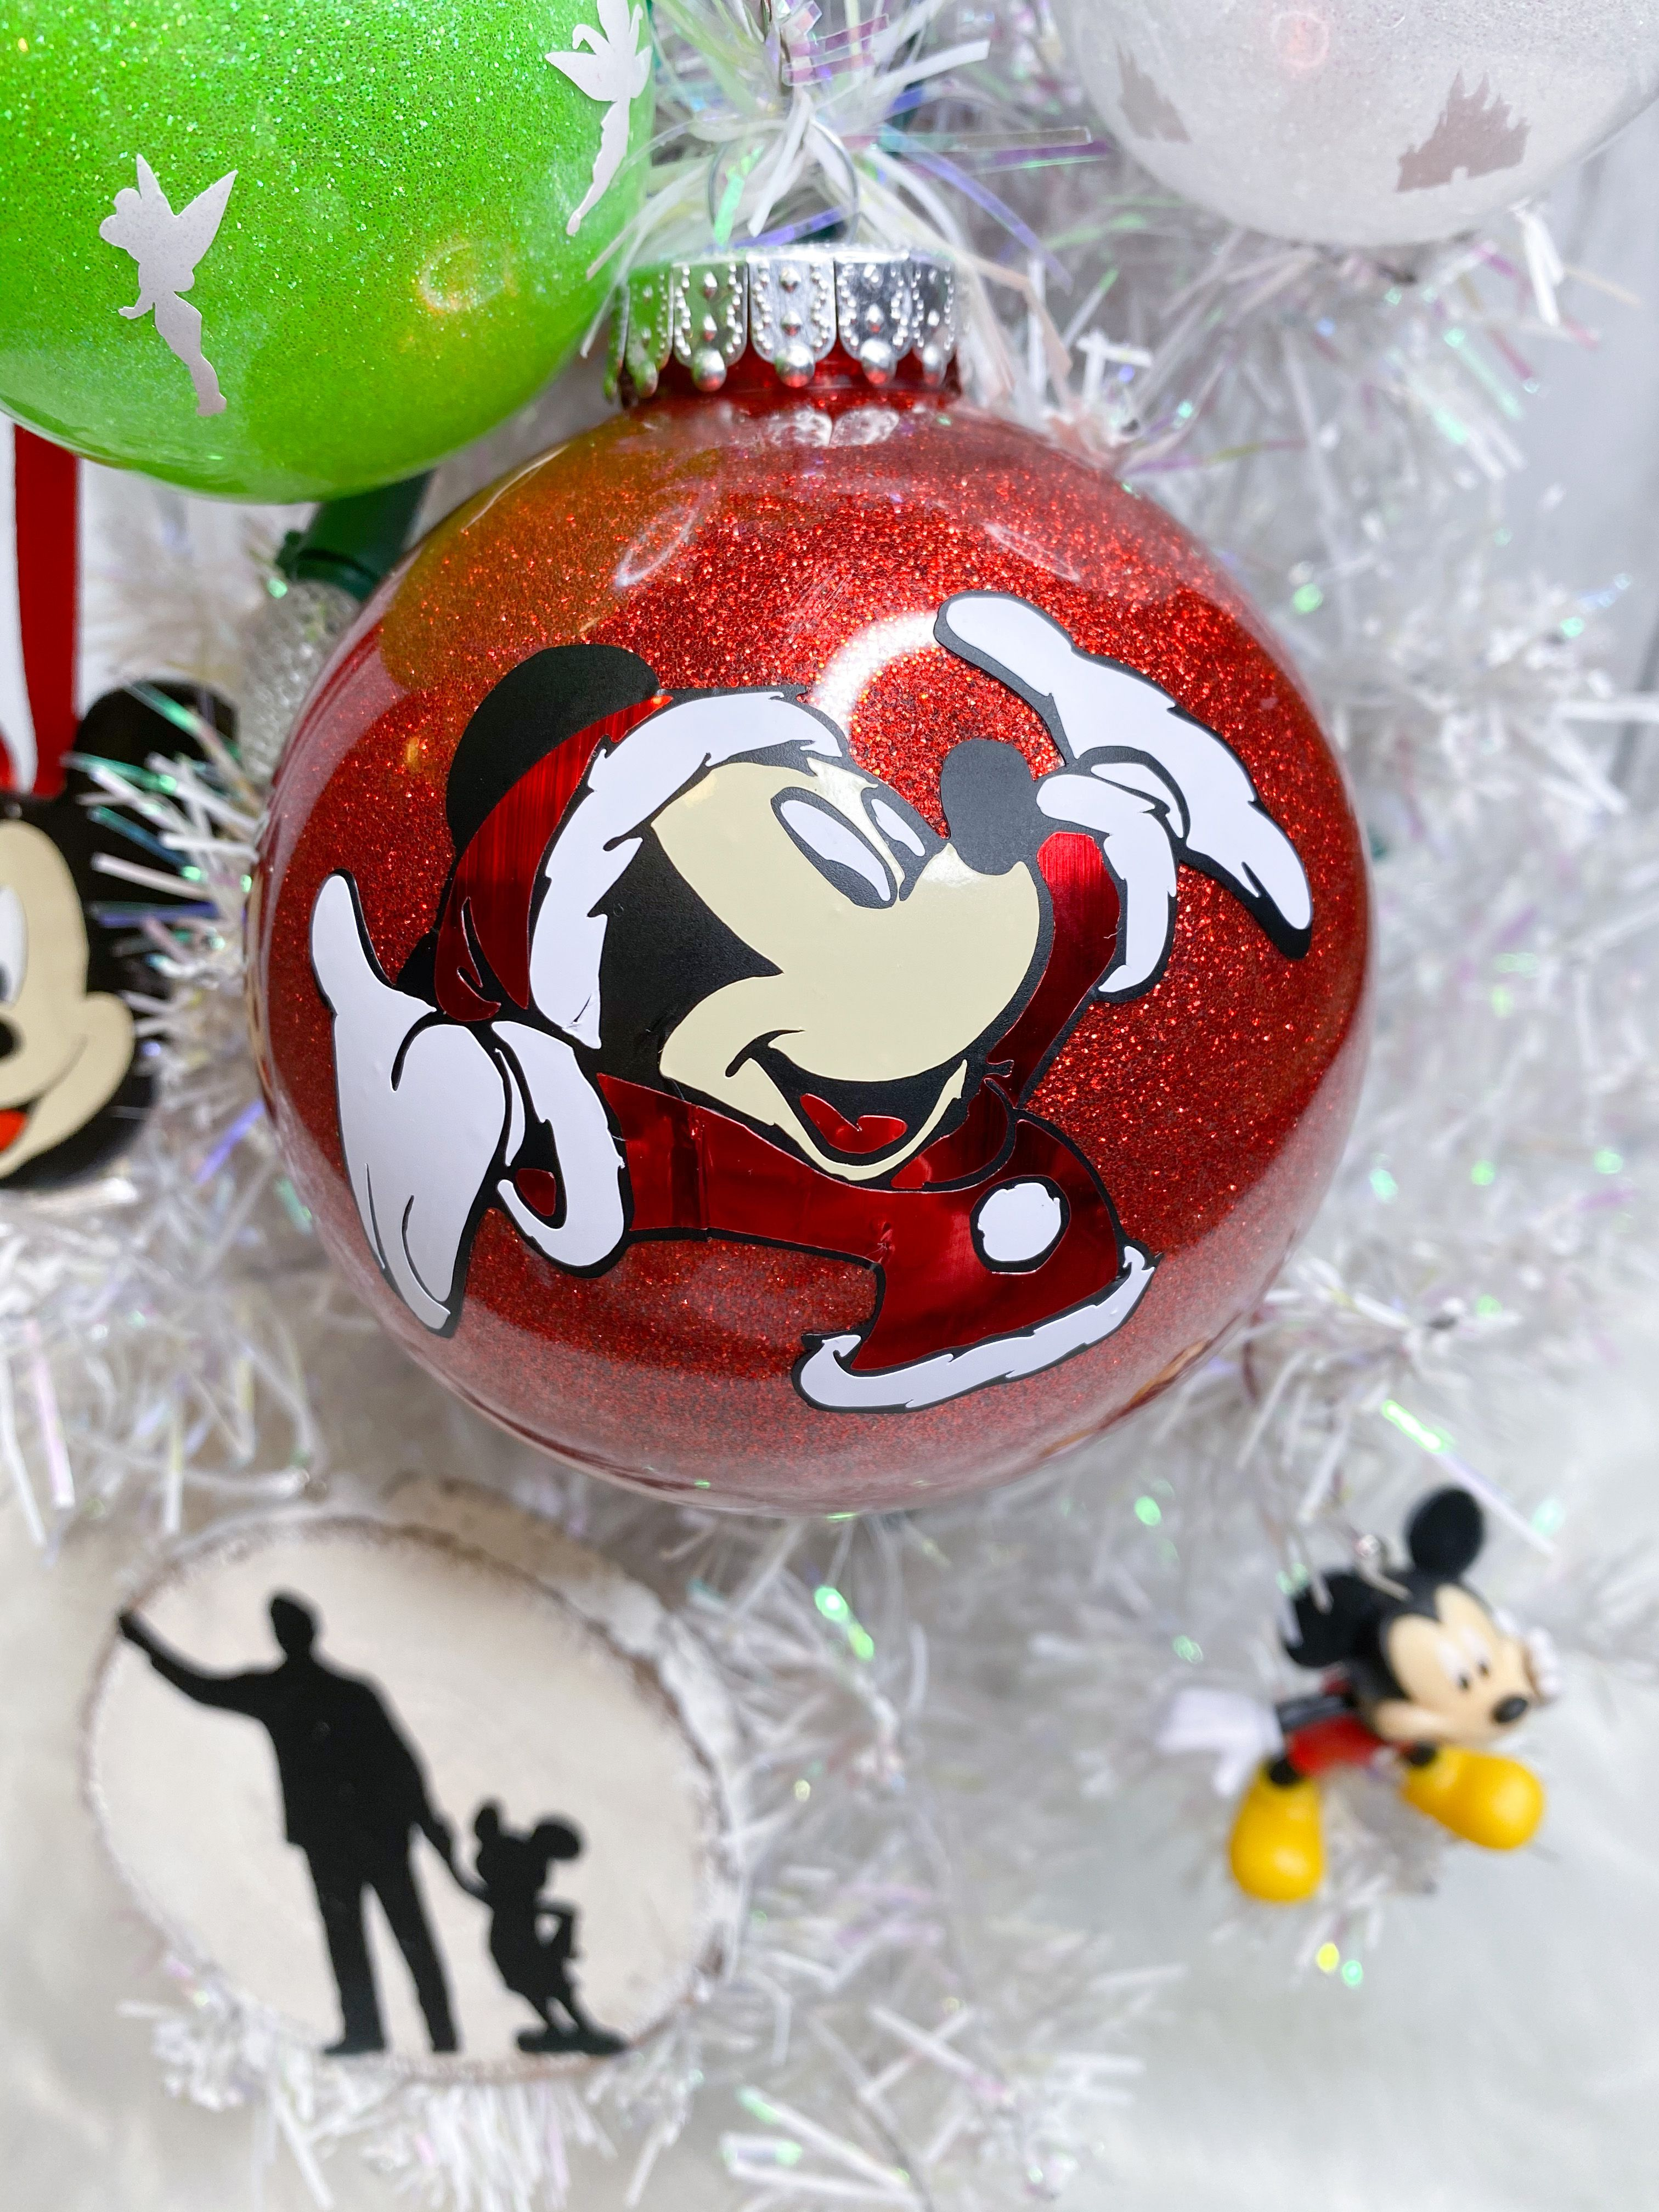 Mickey Mouse Disney Ornament Set Of 5 Free Personalization Etsy In 2021 Mickey Mouse Ornaments Disney Ornaments Diy Disney Christmas Ornaments